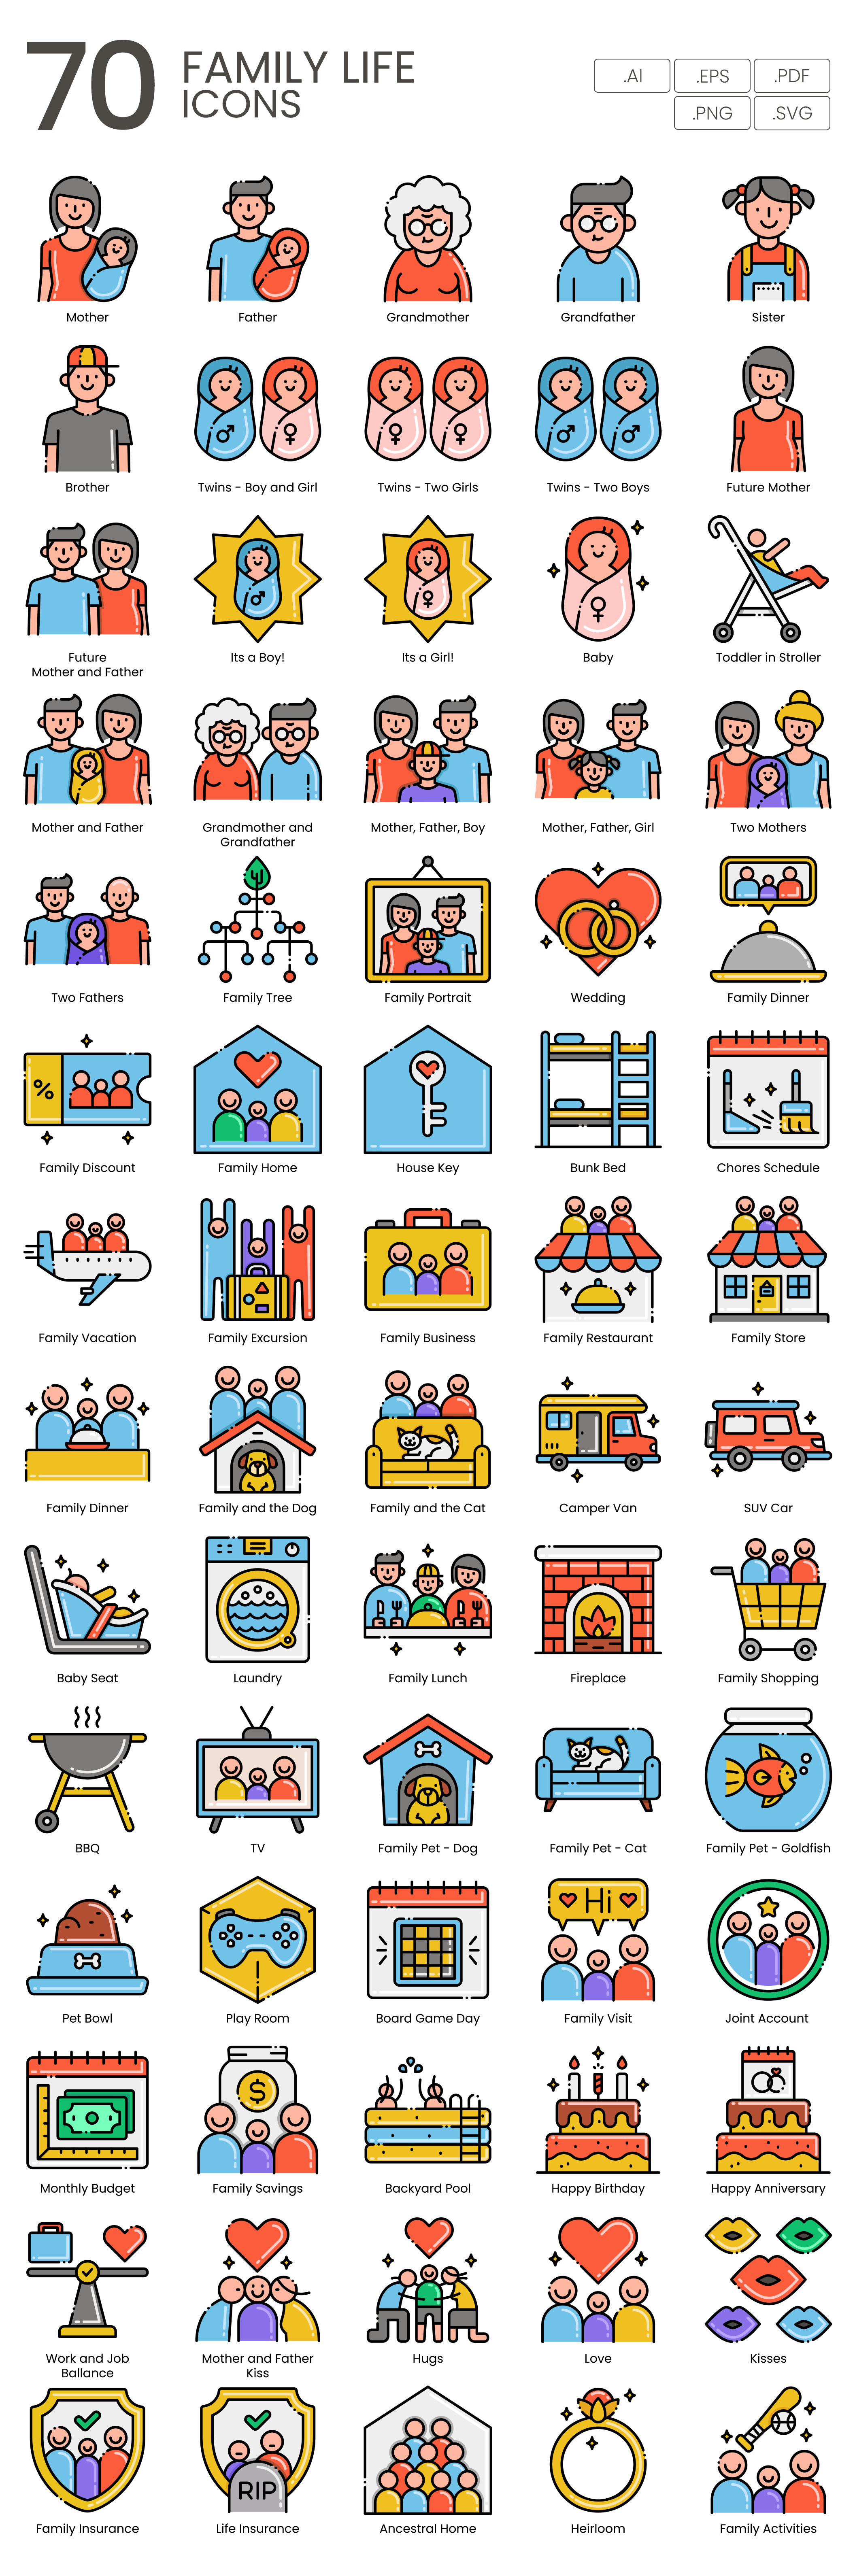 Home Life Vector Icons Preview Image